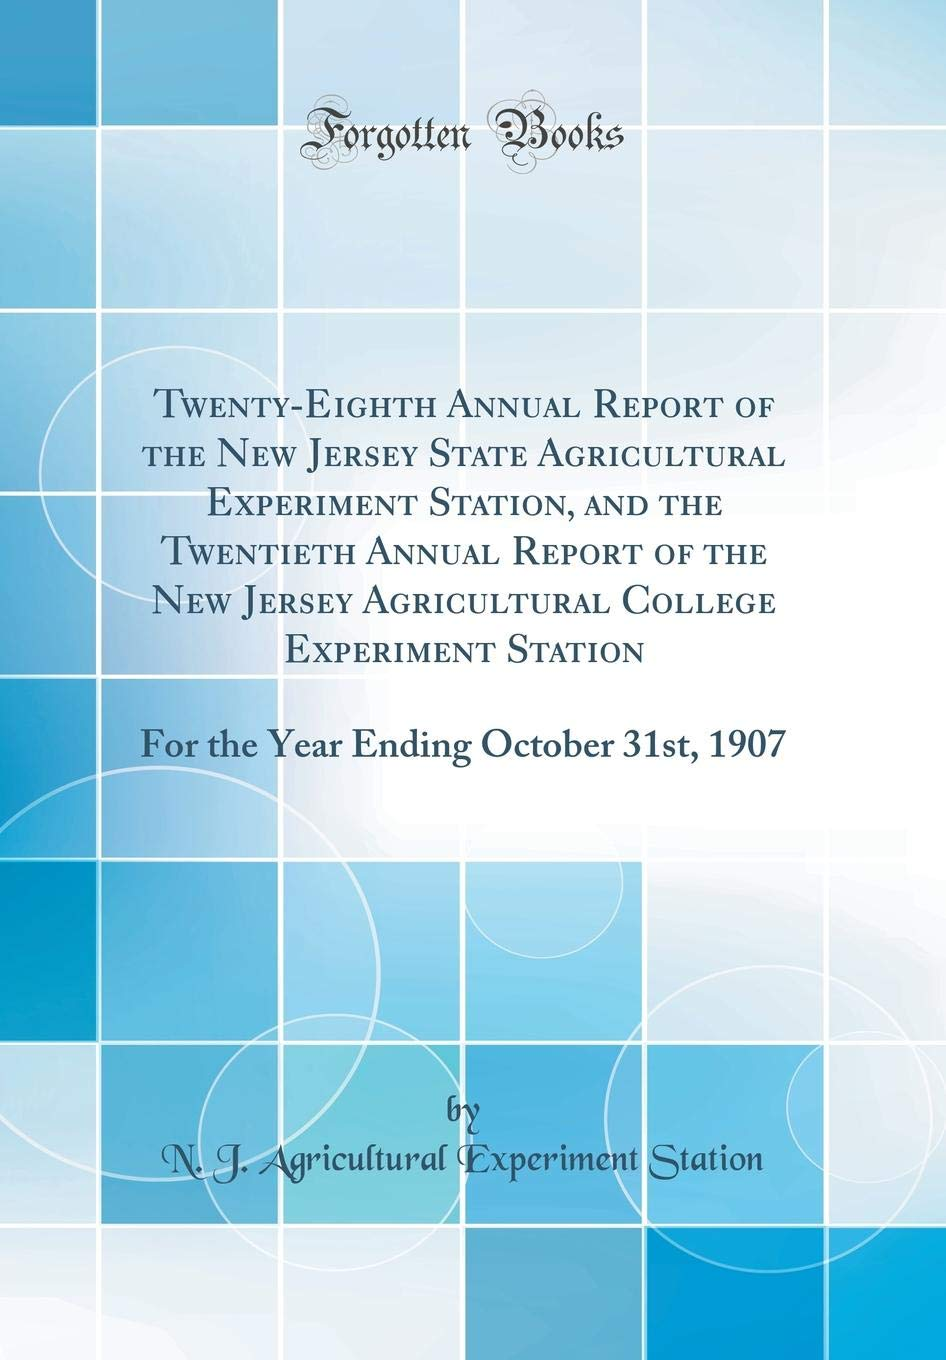 Twenty-Eighth Annual Report of the New Jersey State Agricultural Experiment Station, and the Twentieth Annual Report of the New Jersey Agricultural ... Ending October 31st, 1907 (Classic Reprint) pdf